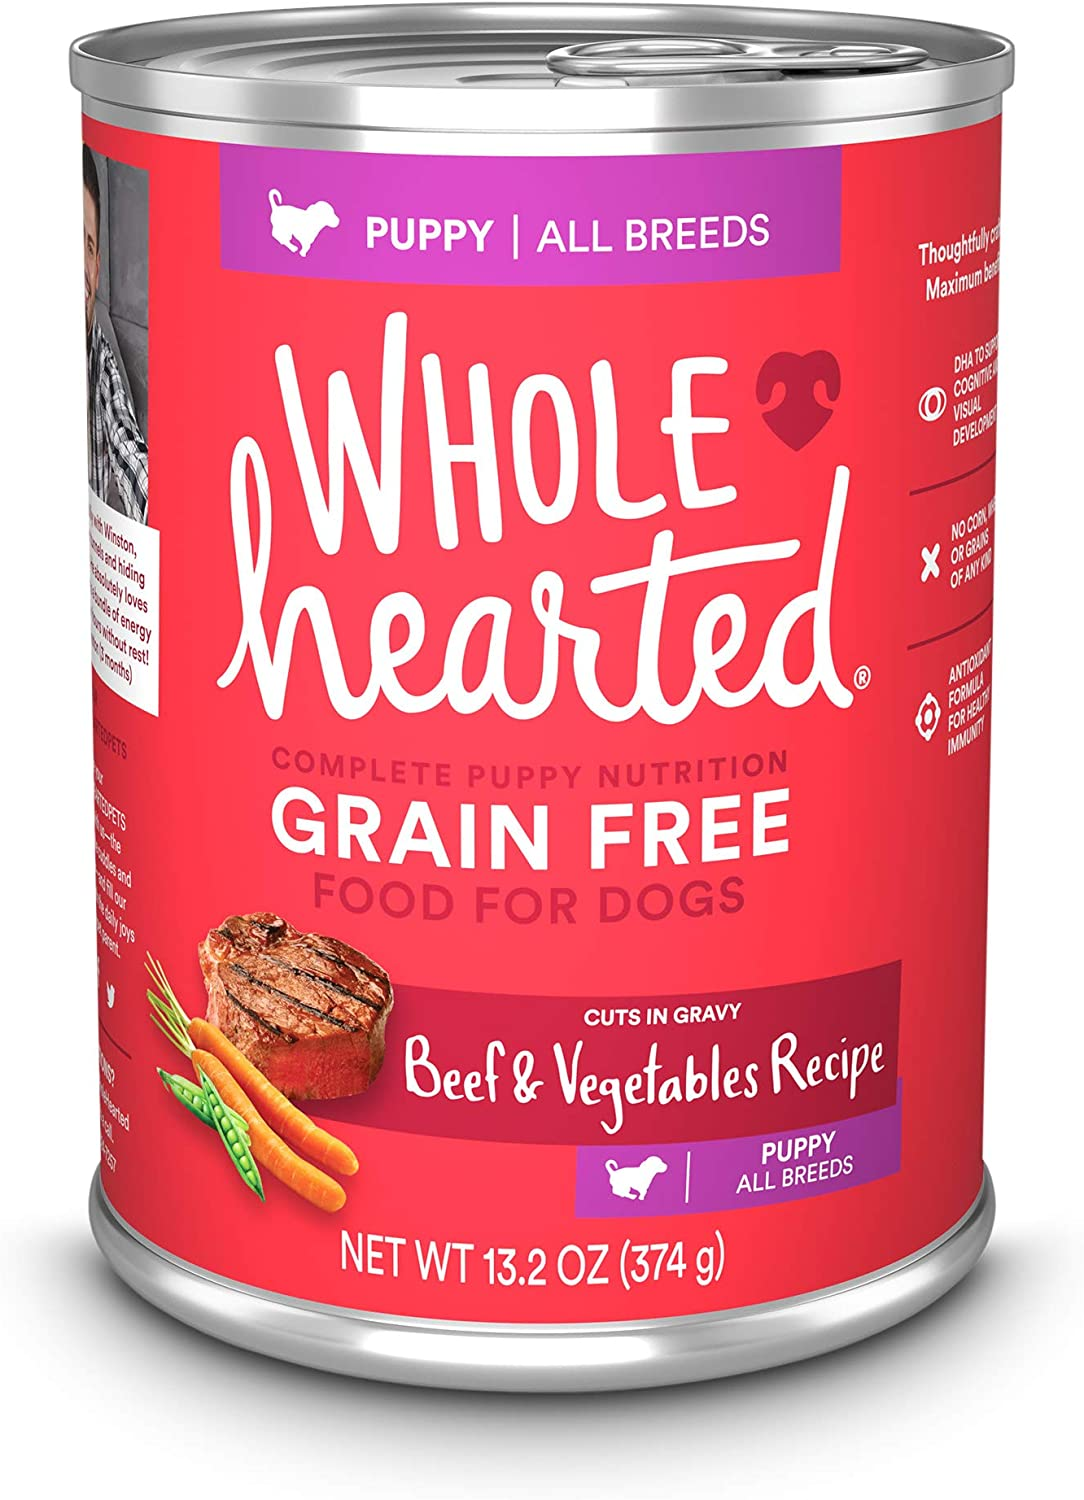 Petco Brand - WholeHearted Grain Free Beef and Vegetable Recipe Wet Puppy Food, 13.2 oz., Case of 12, 12 X 13.2 OZ